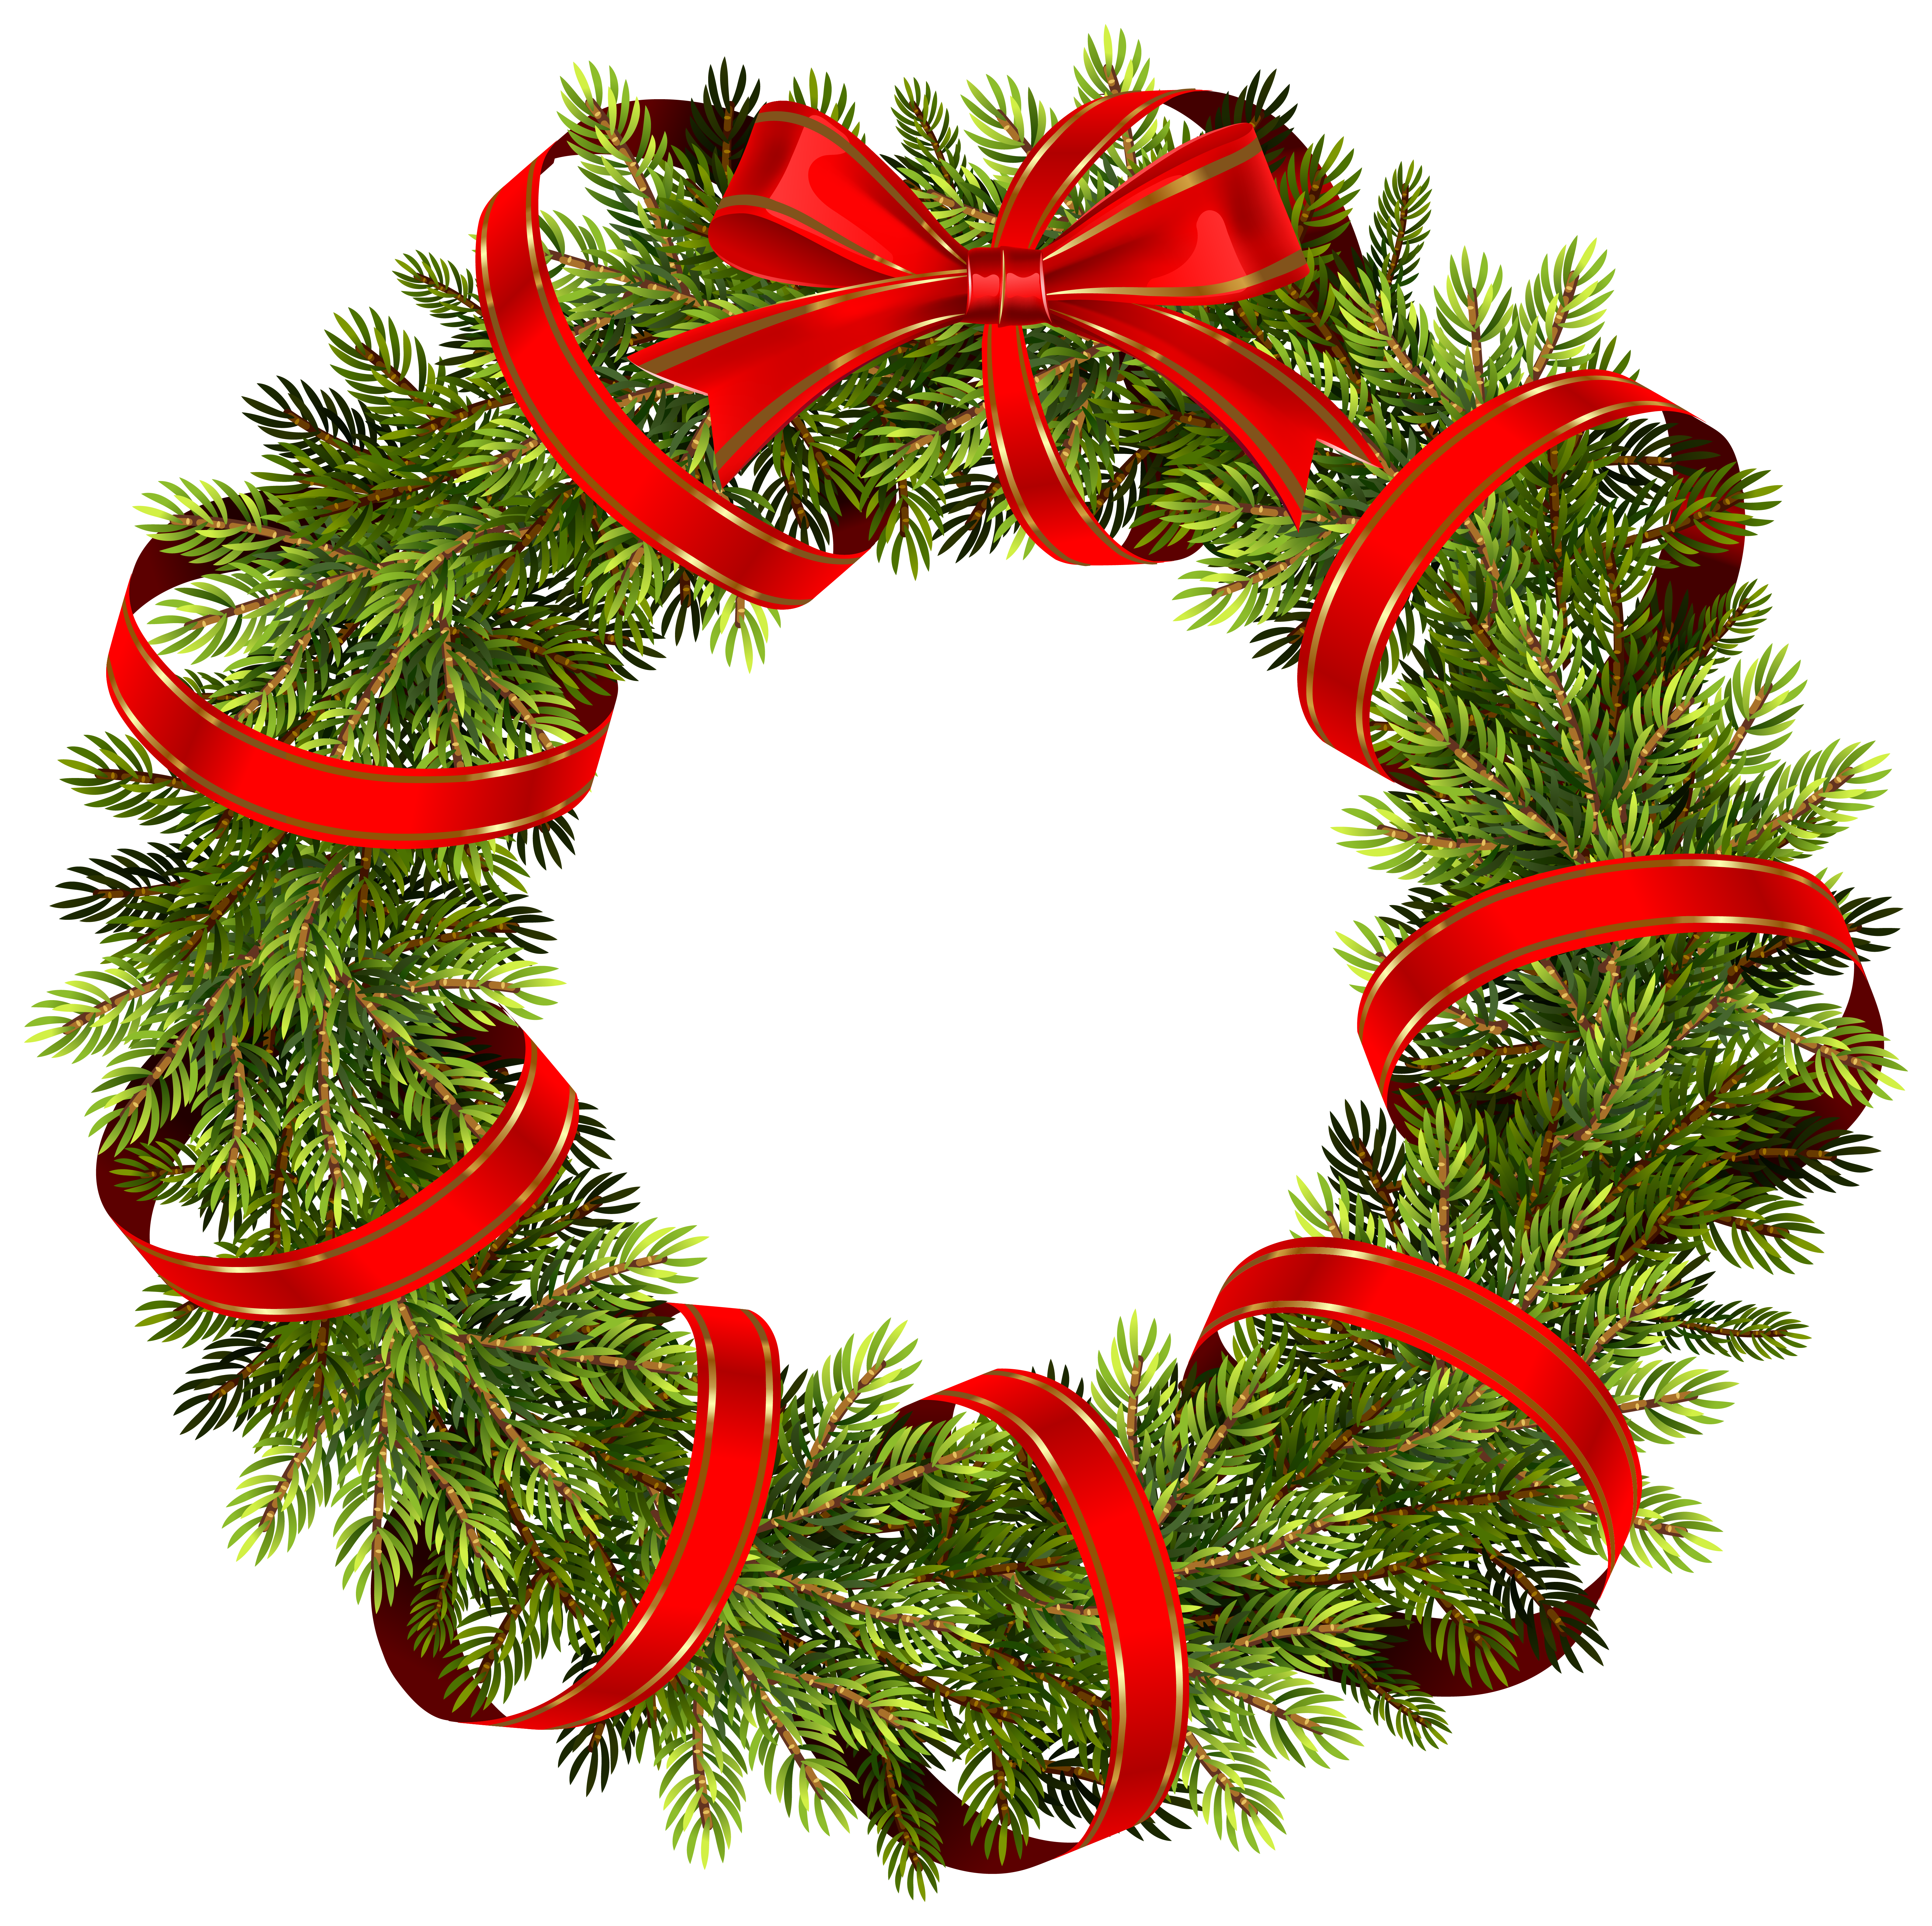 Wreath clipart transparent background Full Pine PNG Image size